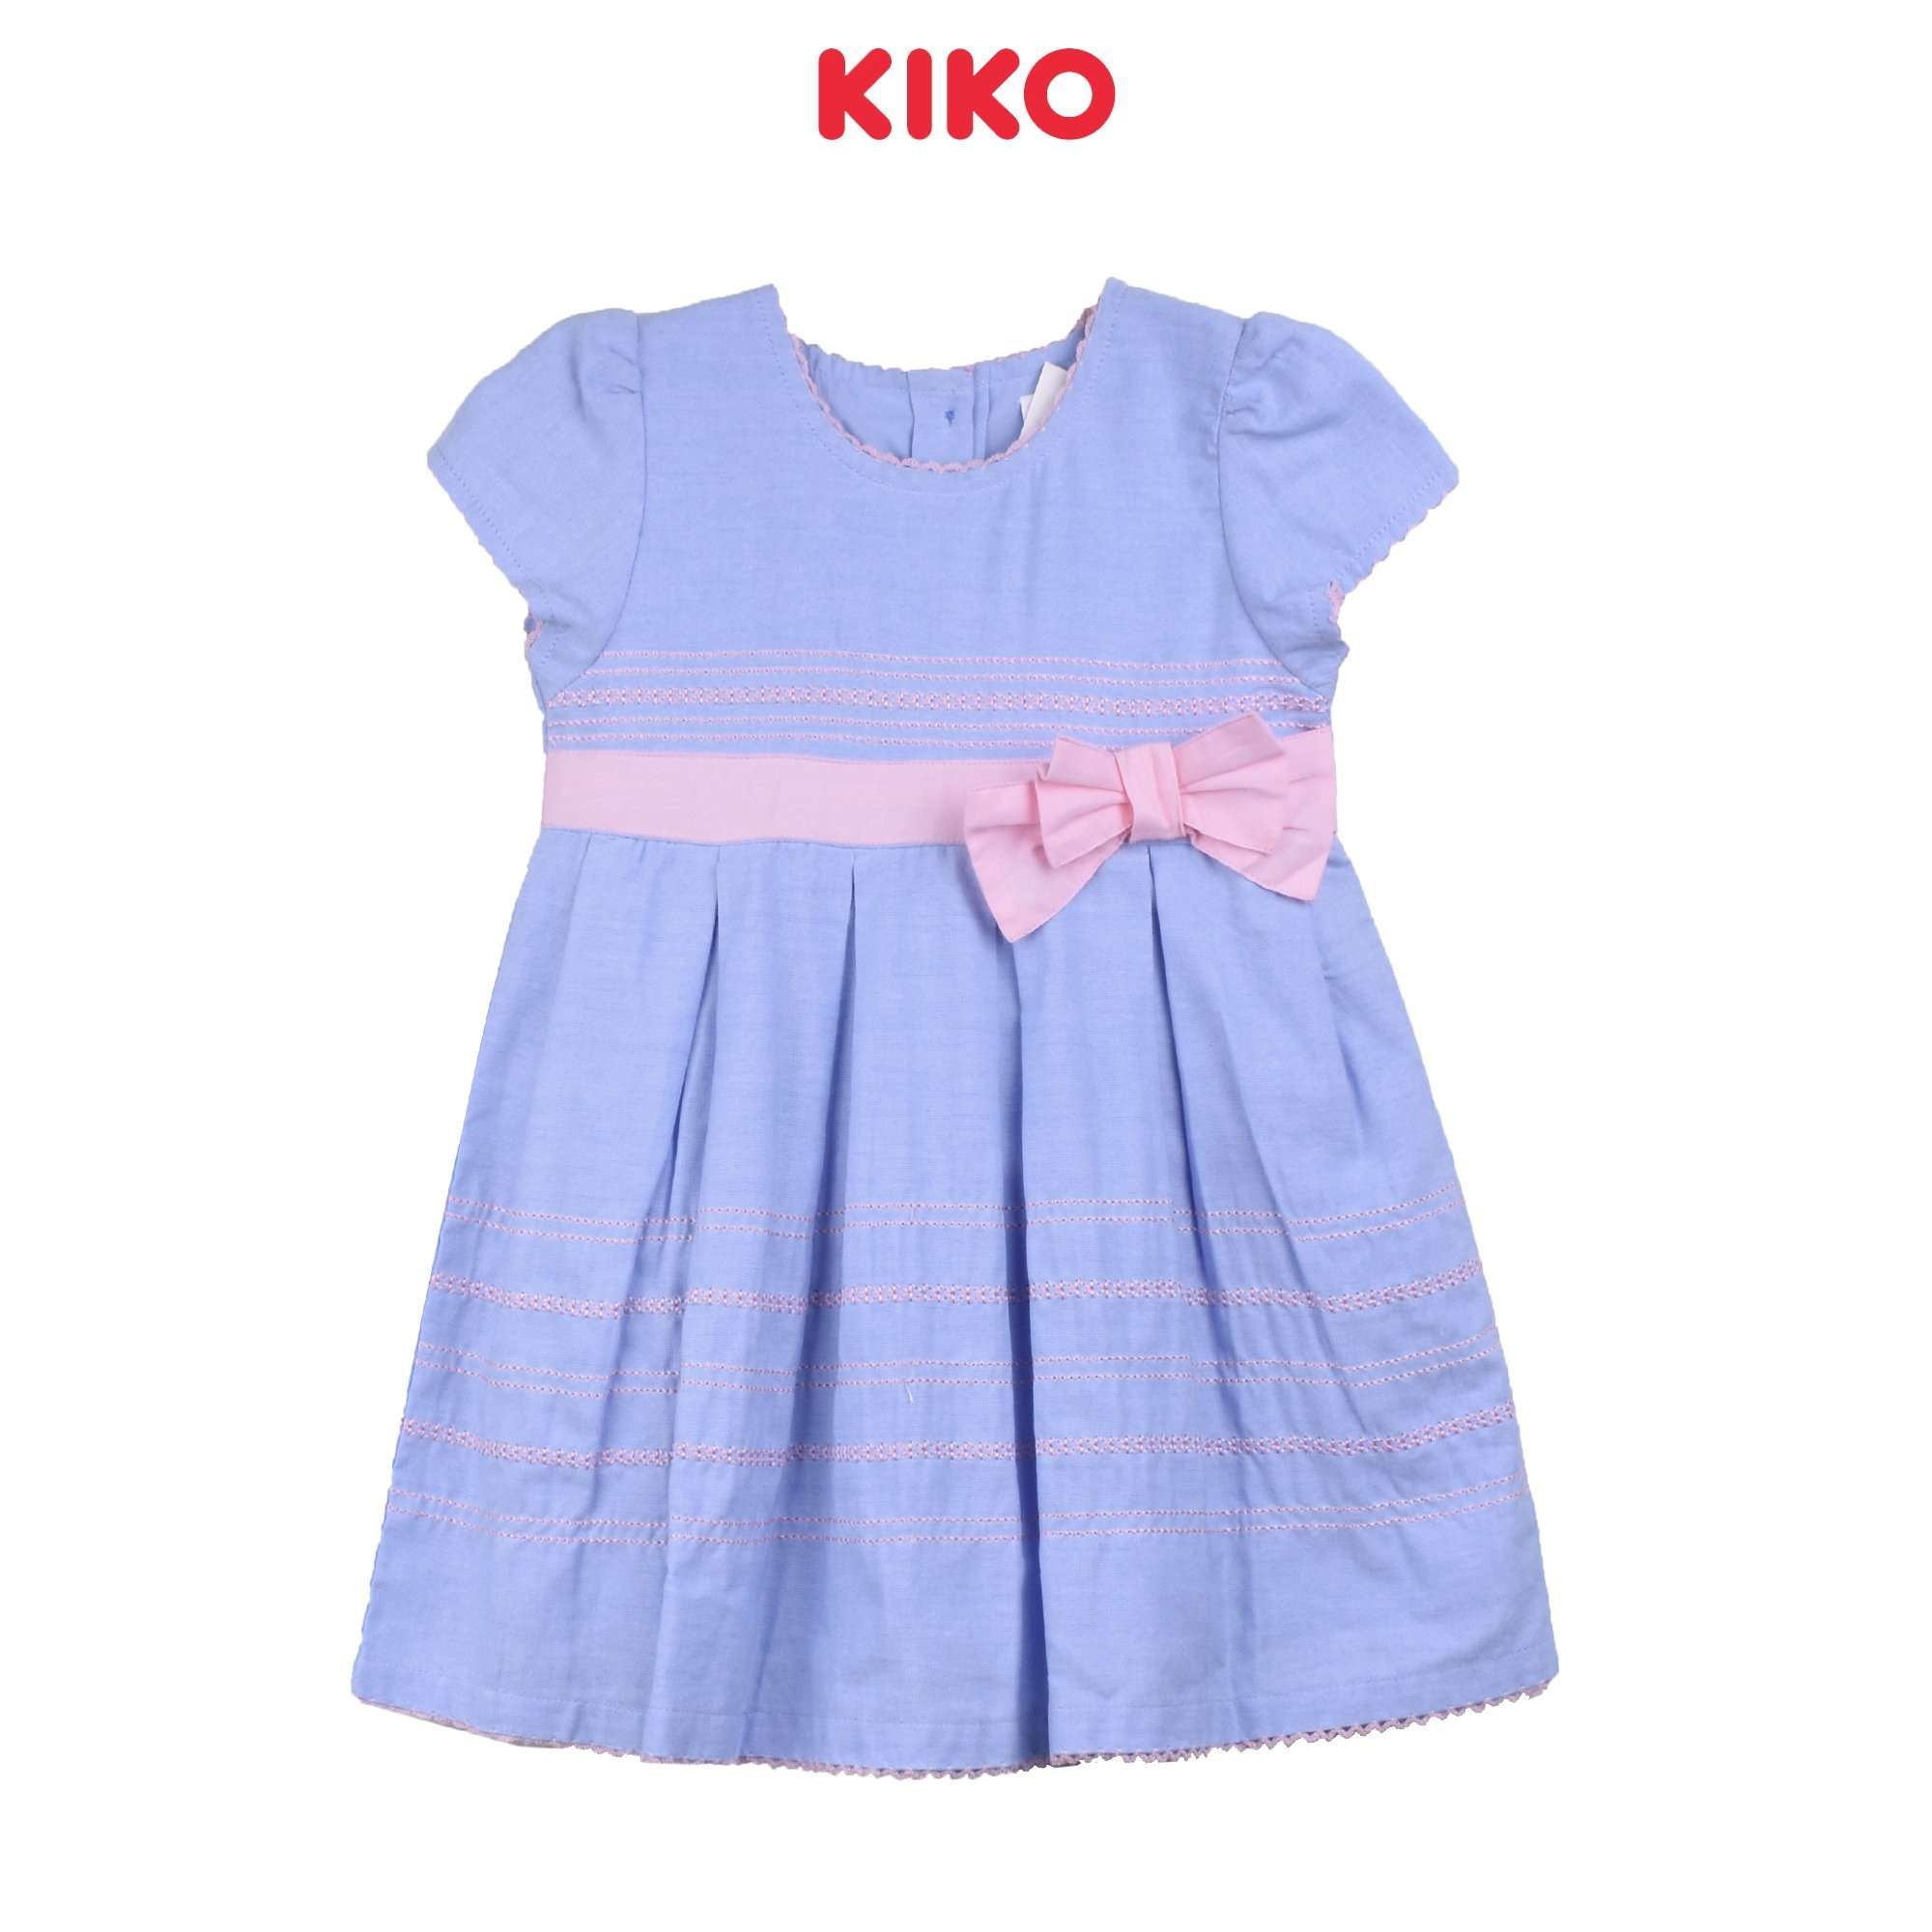 KIKO Girl Short Sleeve Dress K925001-3133-L5 : Buy KIKO online at CMG.MY